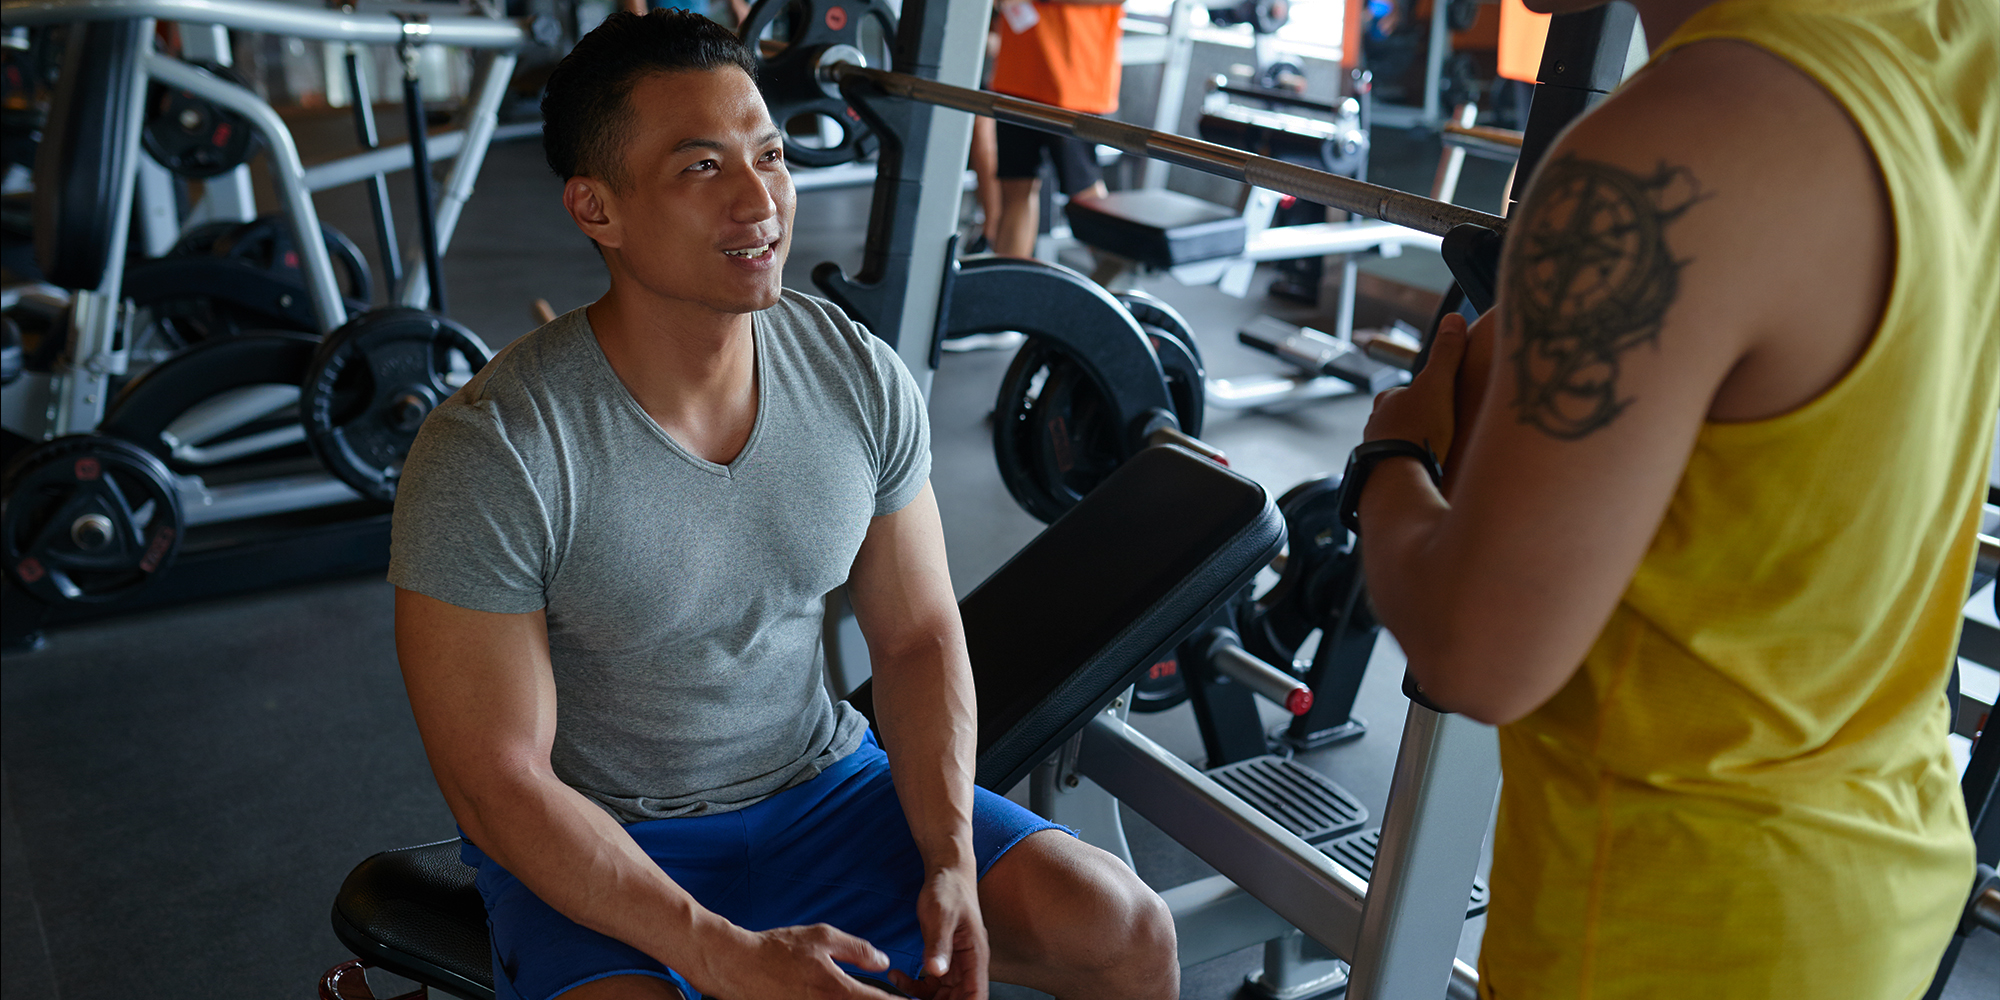 Here's How to Ask Out Your Gym Crush (Or Any Crush, Anywhere)